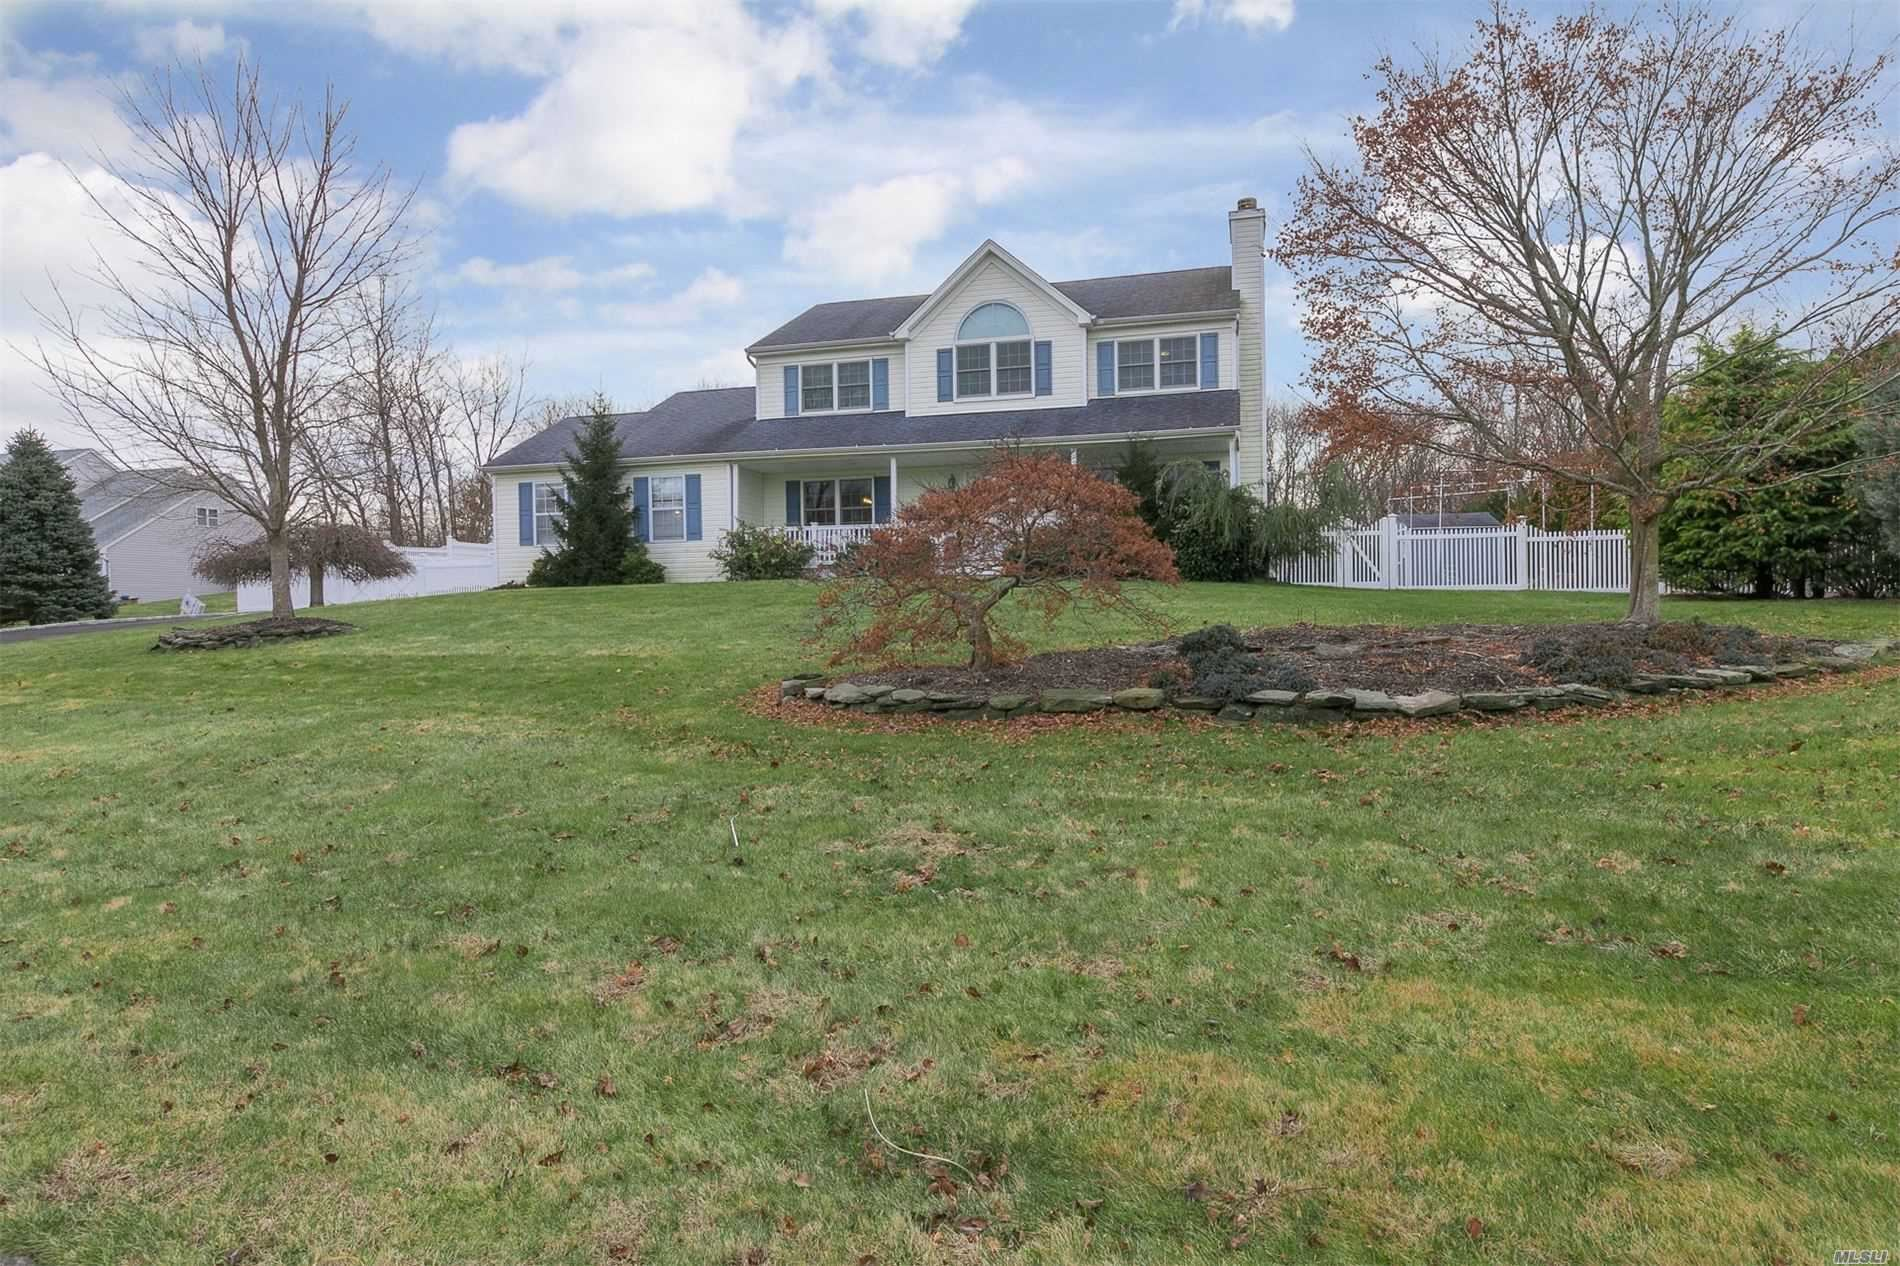 37 The Preserve, Baiting Hollow, NY 11933 - MLS#: 3189210